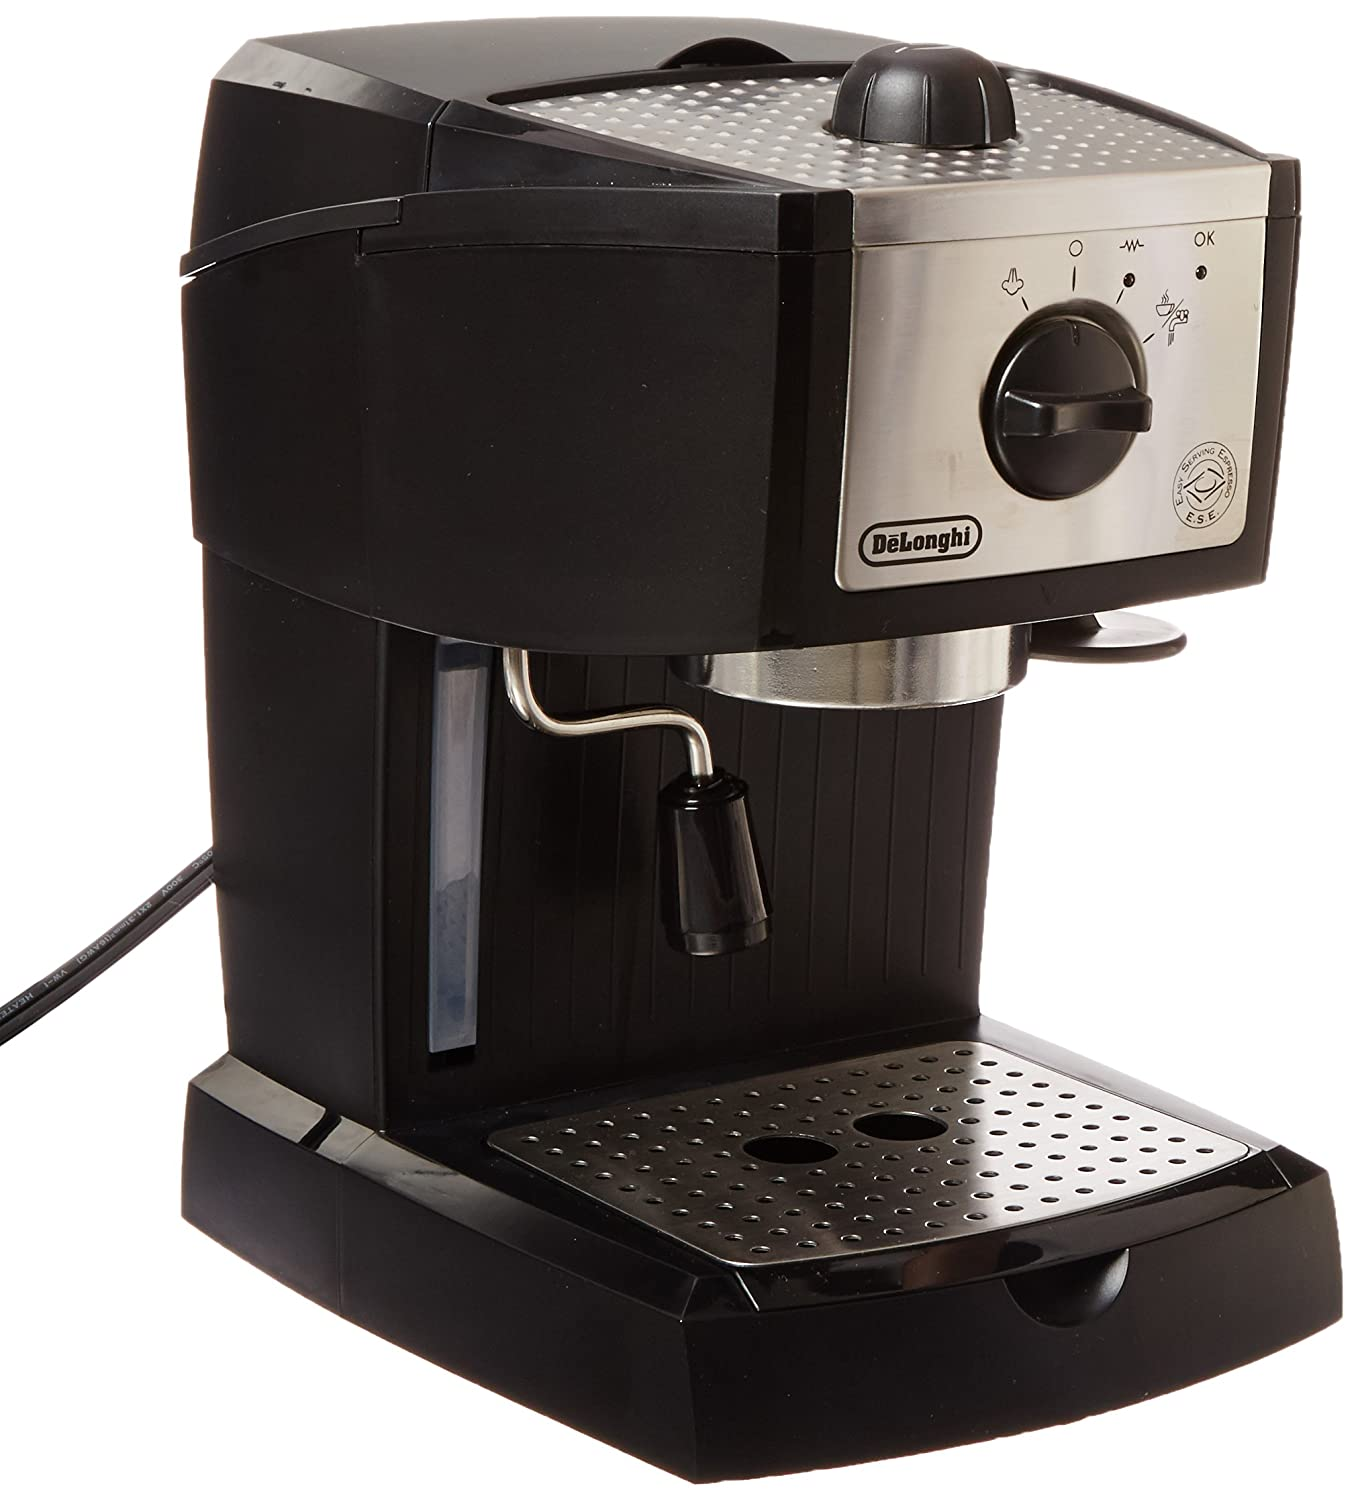 De'Longhi EC155 15-Bar Espresso and Cappuccino Maker